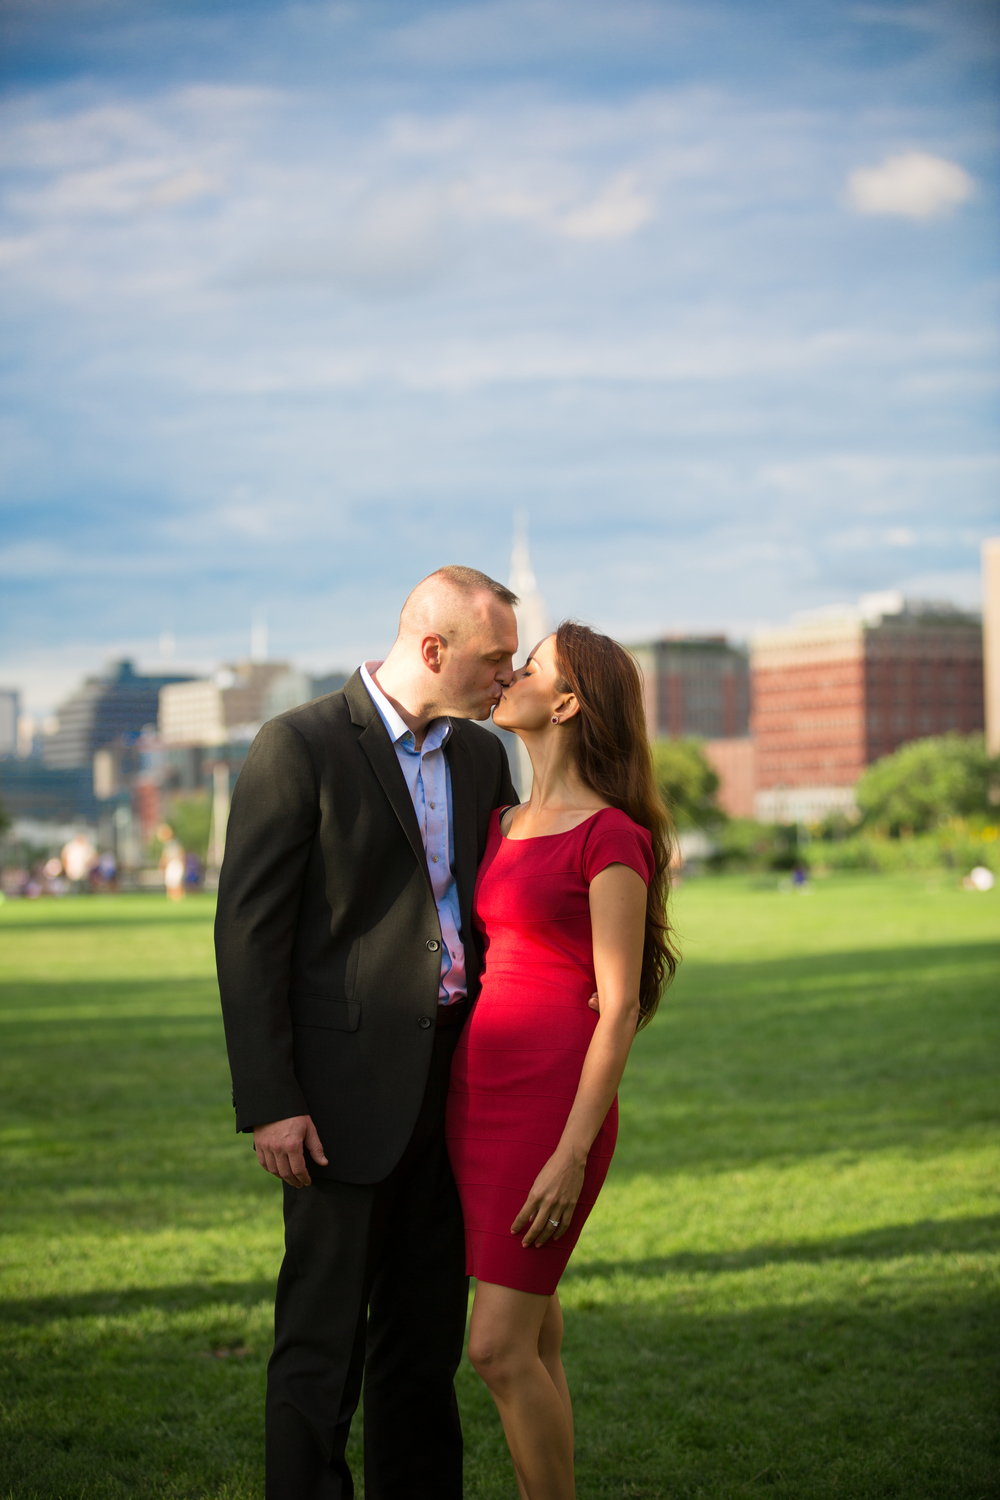 S&B Engagement Shoot-43.jpg